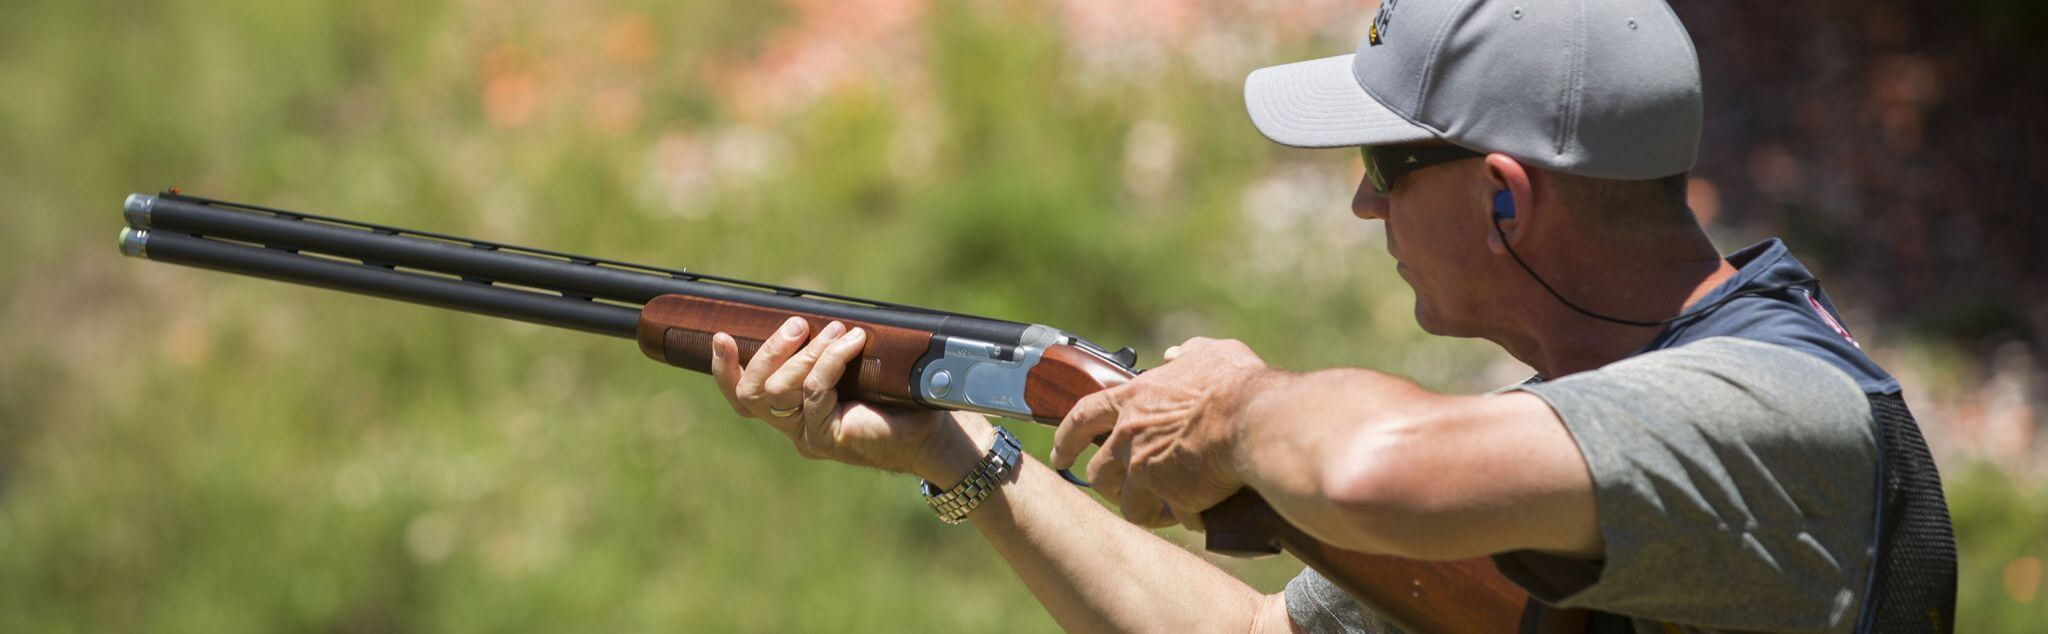 Clay Pigeon Shooting in Carmarthenshire